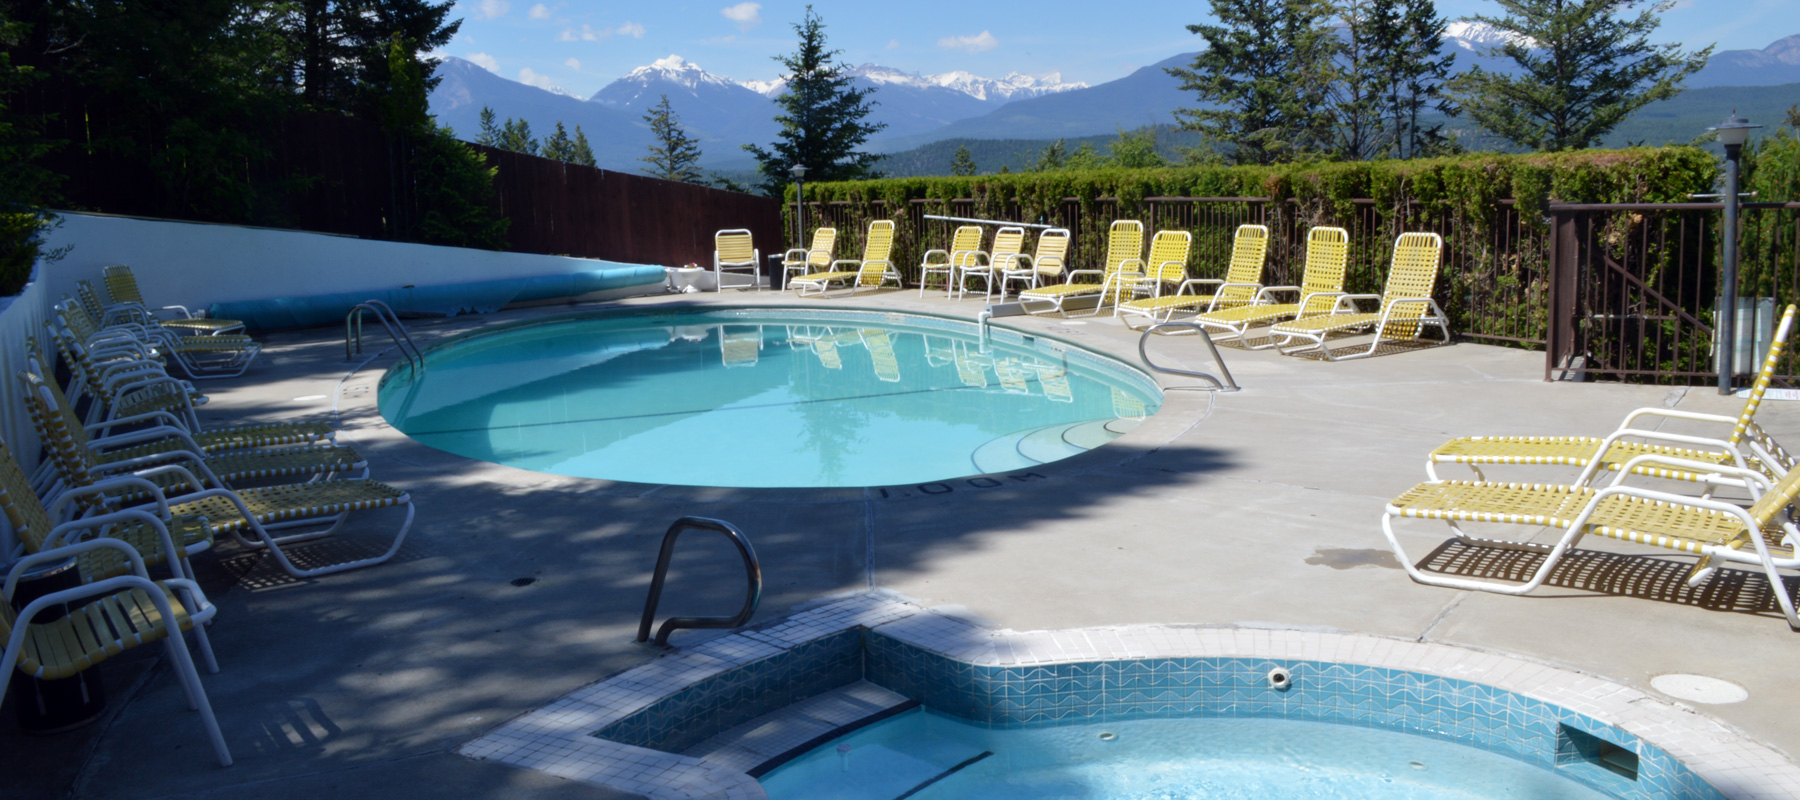 heated Pool and Hot Tub in Radium Hot Springs